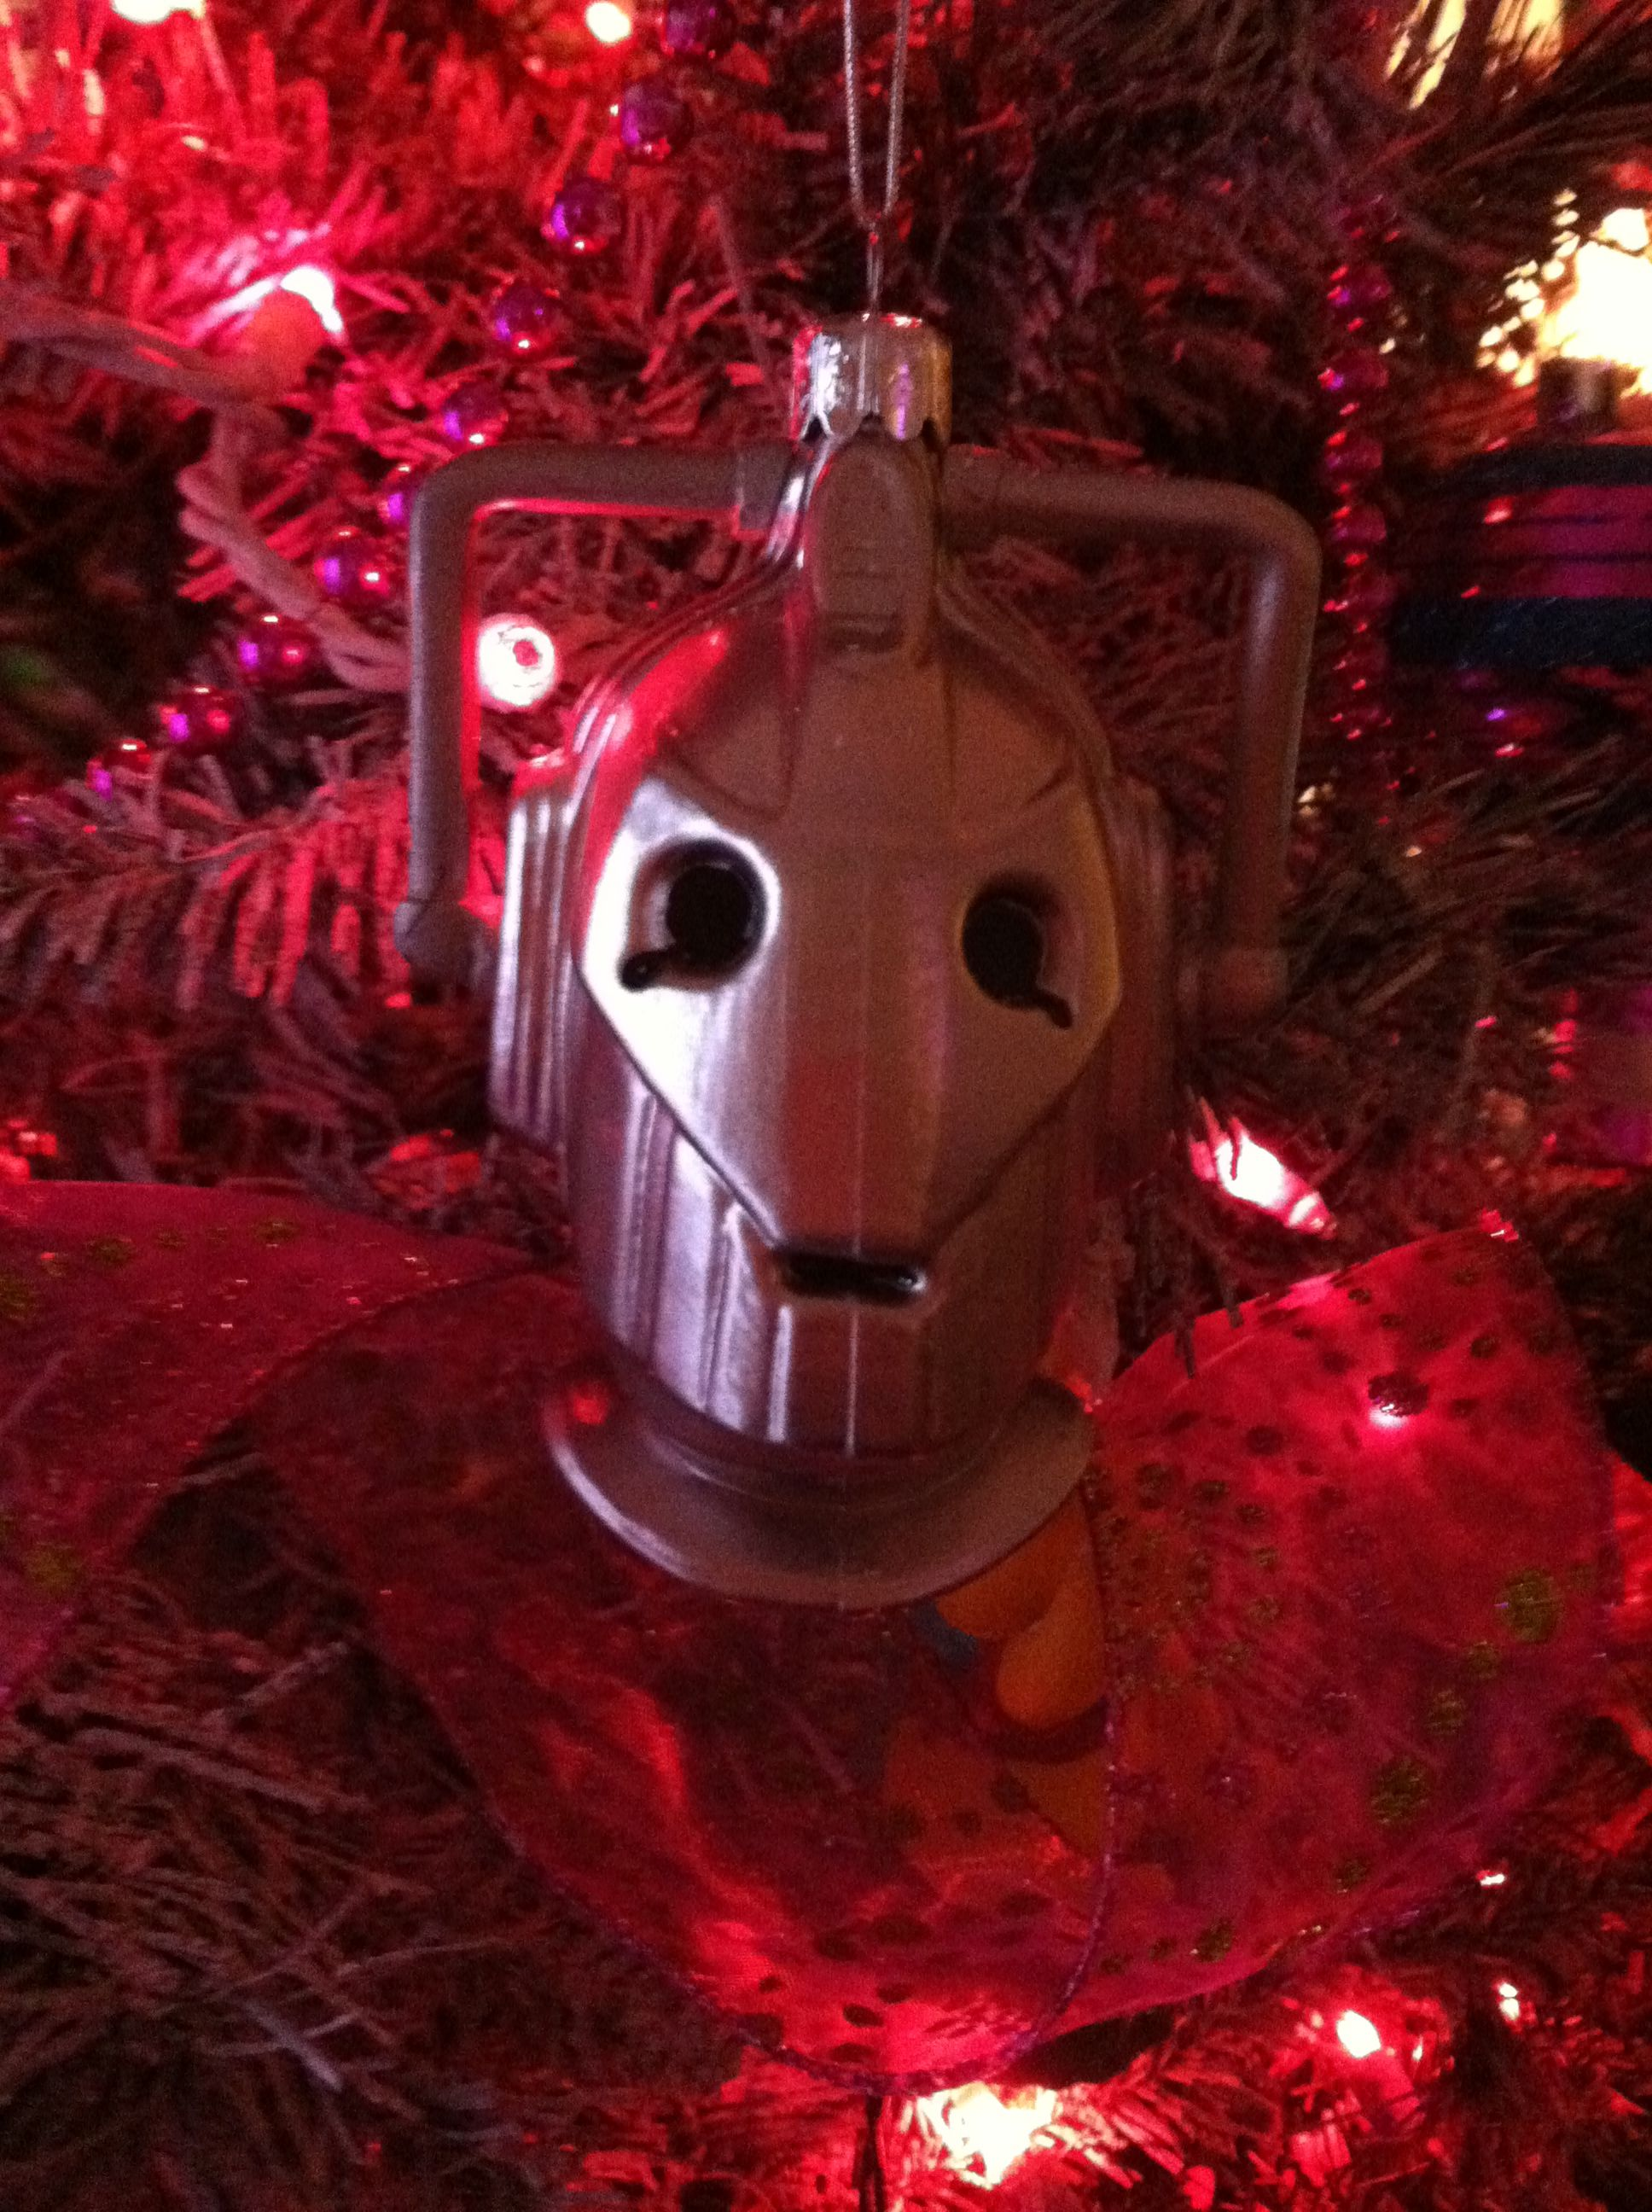 Doctor Who ornament Cyberman | Christmas ornaments ...